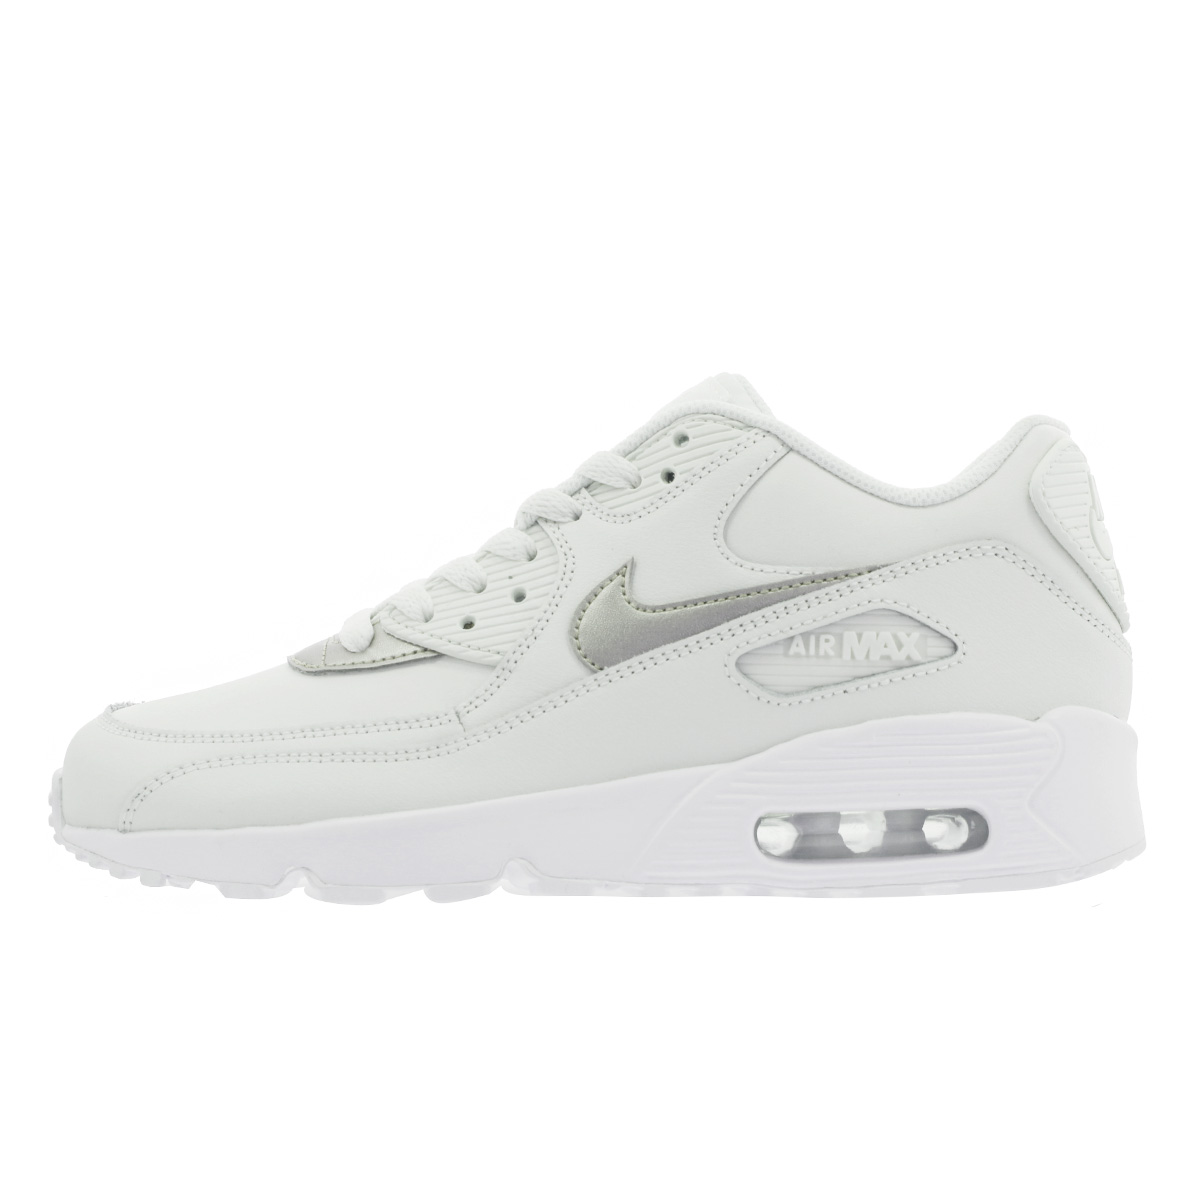 sports shoes 7c212 49426 NIKE AIR MAX 90 LTR GS Kie Ney AMAX 90 leather GS PHANTOM METALLIC RED  BRONZE WHITE 833,376-014